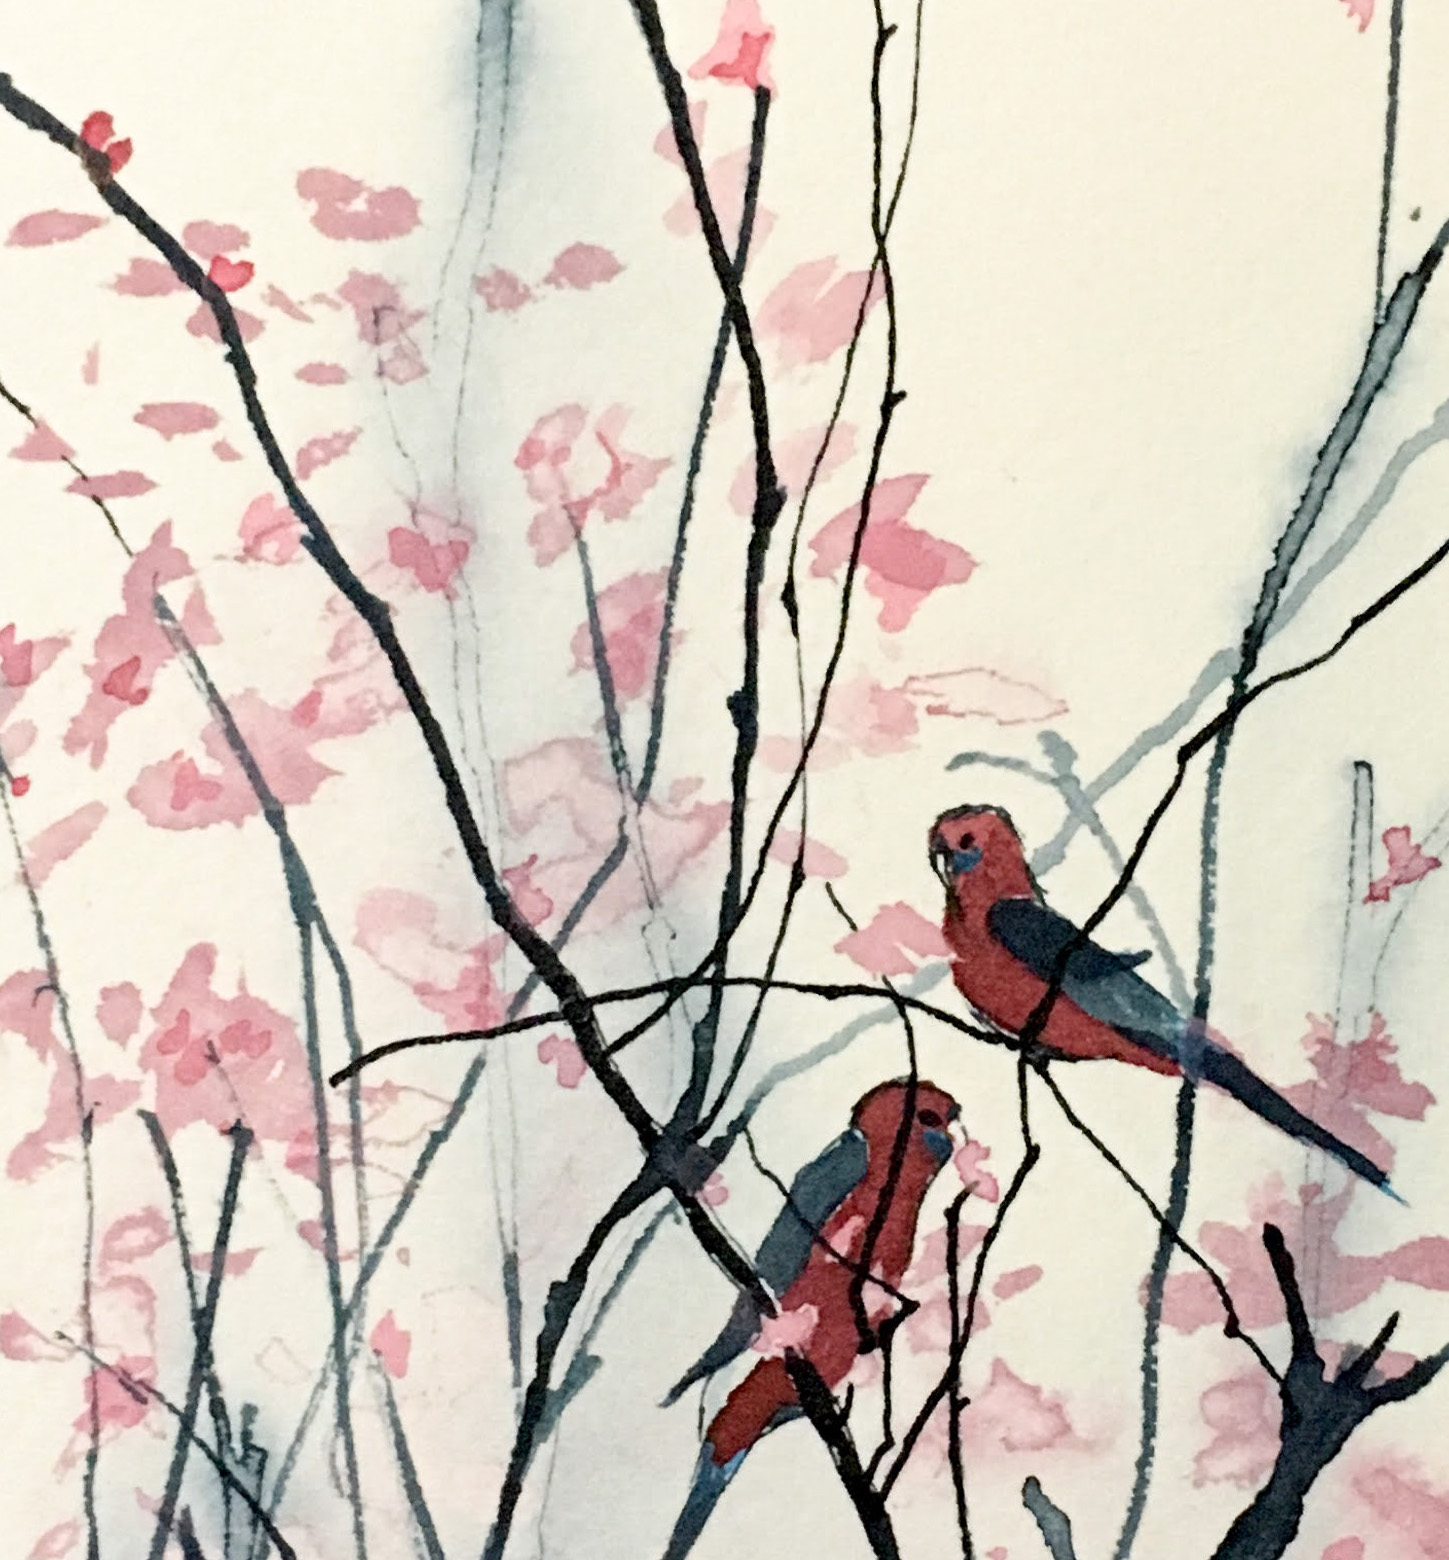 Birds and Blossoms, pigmented ink drawing by Kylie Fogarty